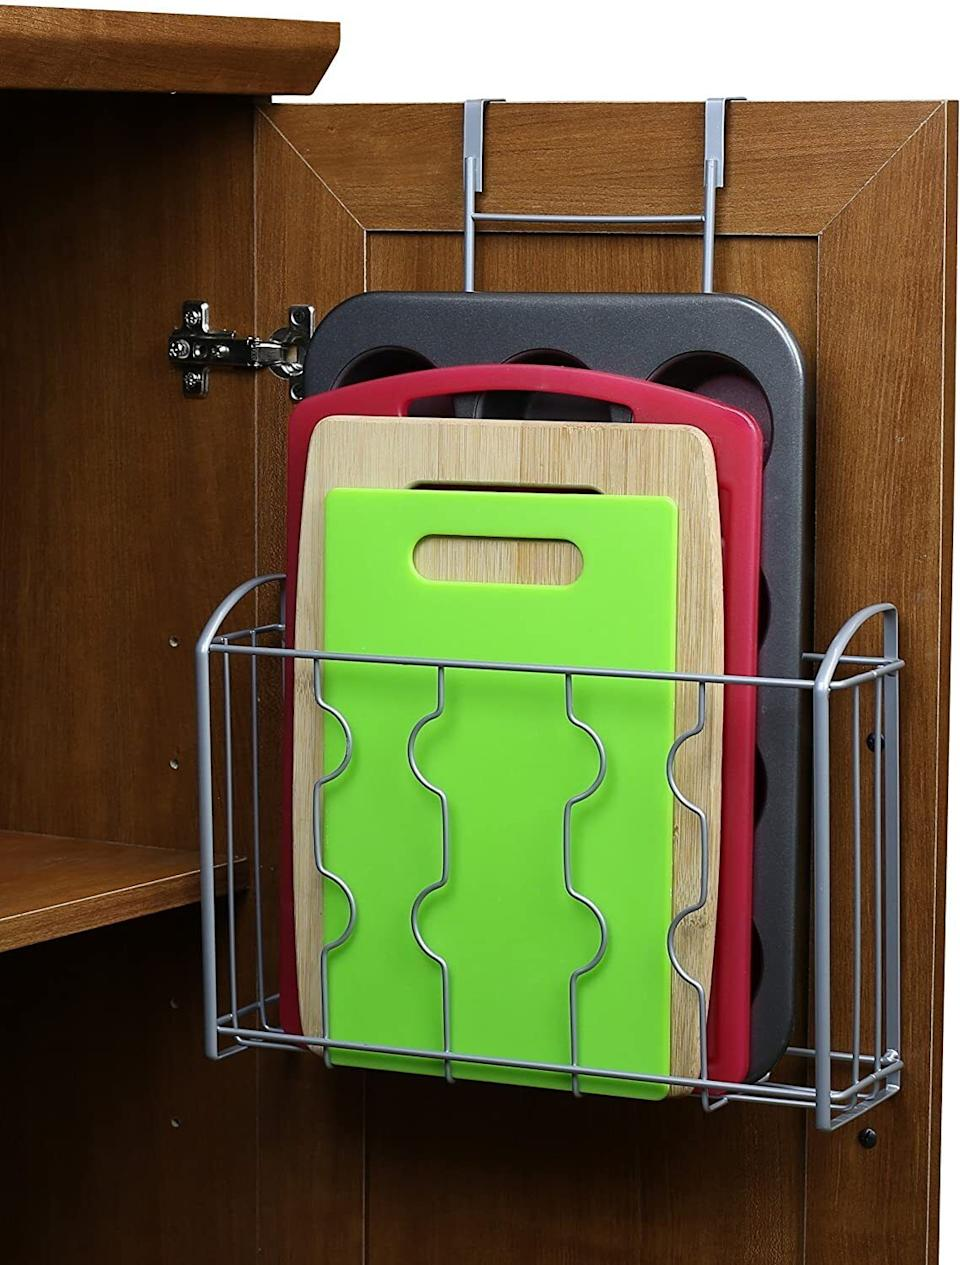 """Give your awkwardly shaped plastic wrap and cutting boards a nice home of their own.<br /><br /><strong>Promising review:</strong>""""This organizer is so useful!<strong>I recently moved and ended up with a much smaller kitchen, so I've been doing everything I can to make sure there's a place for everything and no wasted space.</strong>Luckily, I have pretty wide cabinets, so this works out perfectly. I have one holding my cutting boards (four standard plastic boards) and another holding my foil, cling wrap, and parchment paper boxes. The organizer is super easy to assemble and it's completely versatile.<strong>Hang it over the cabinet door or attach it to the wall/cabinet door, which means it's great for renters and owners.</strong>"""" —<a href=""""https://www.amazon.com/dp/B01LXKKVPK?tag=huffpost-bfsyndication-20&ascsubtag=5834502%2C9%2C46%2Cd%2C0%2C0%2C0%2C962%3A1%3B901%3A2%3B900%3A2%3B974%3A3%3B975%3A2%3B982%3A2%2C16267119%2C0"""" target=""""_blank"""" rel=""""noopener noreferrer"""">Kerry</a><br /><br /><strong>Get it from Amazon for<a href=""""https://www.amazon.com/dp/B01LXKKVPK?tag=huffpost-bfsyndication-20&ascsubtag=5834502%2C9%2C46%2Cd%2C0%2C0%2C0%2C962%3A1%3B901%3A2%3B900%3A2%3B974%3A3%3B975%3A2%3B982%3A2%2C16267119%2C0"""" target=""""_blank"""" rel=""""noopener noreferrer"""">$14.97</a>.</strong>"""